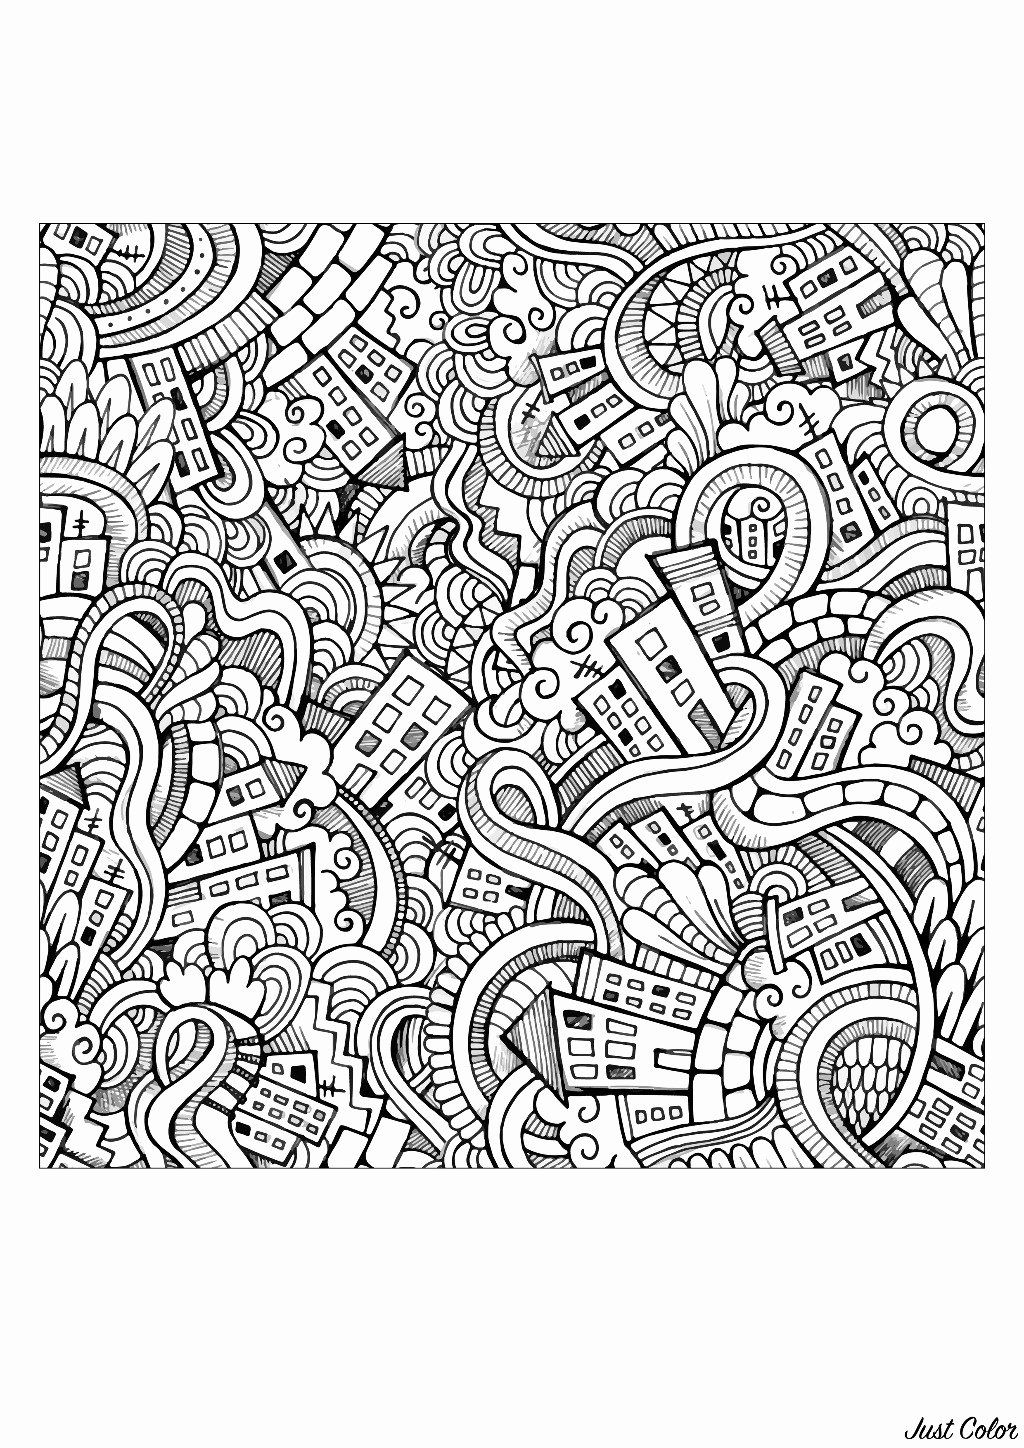 Nature Coloring Pages For Adults Pdf Best Of Awesome Random Pattern Coloring Pages Nocn Doodle Doodle Bunga Bunga